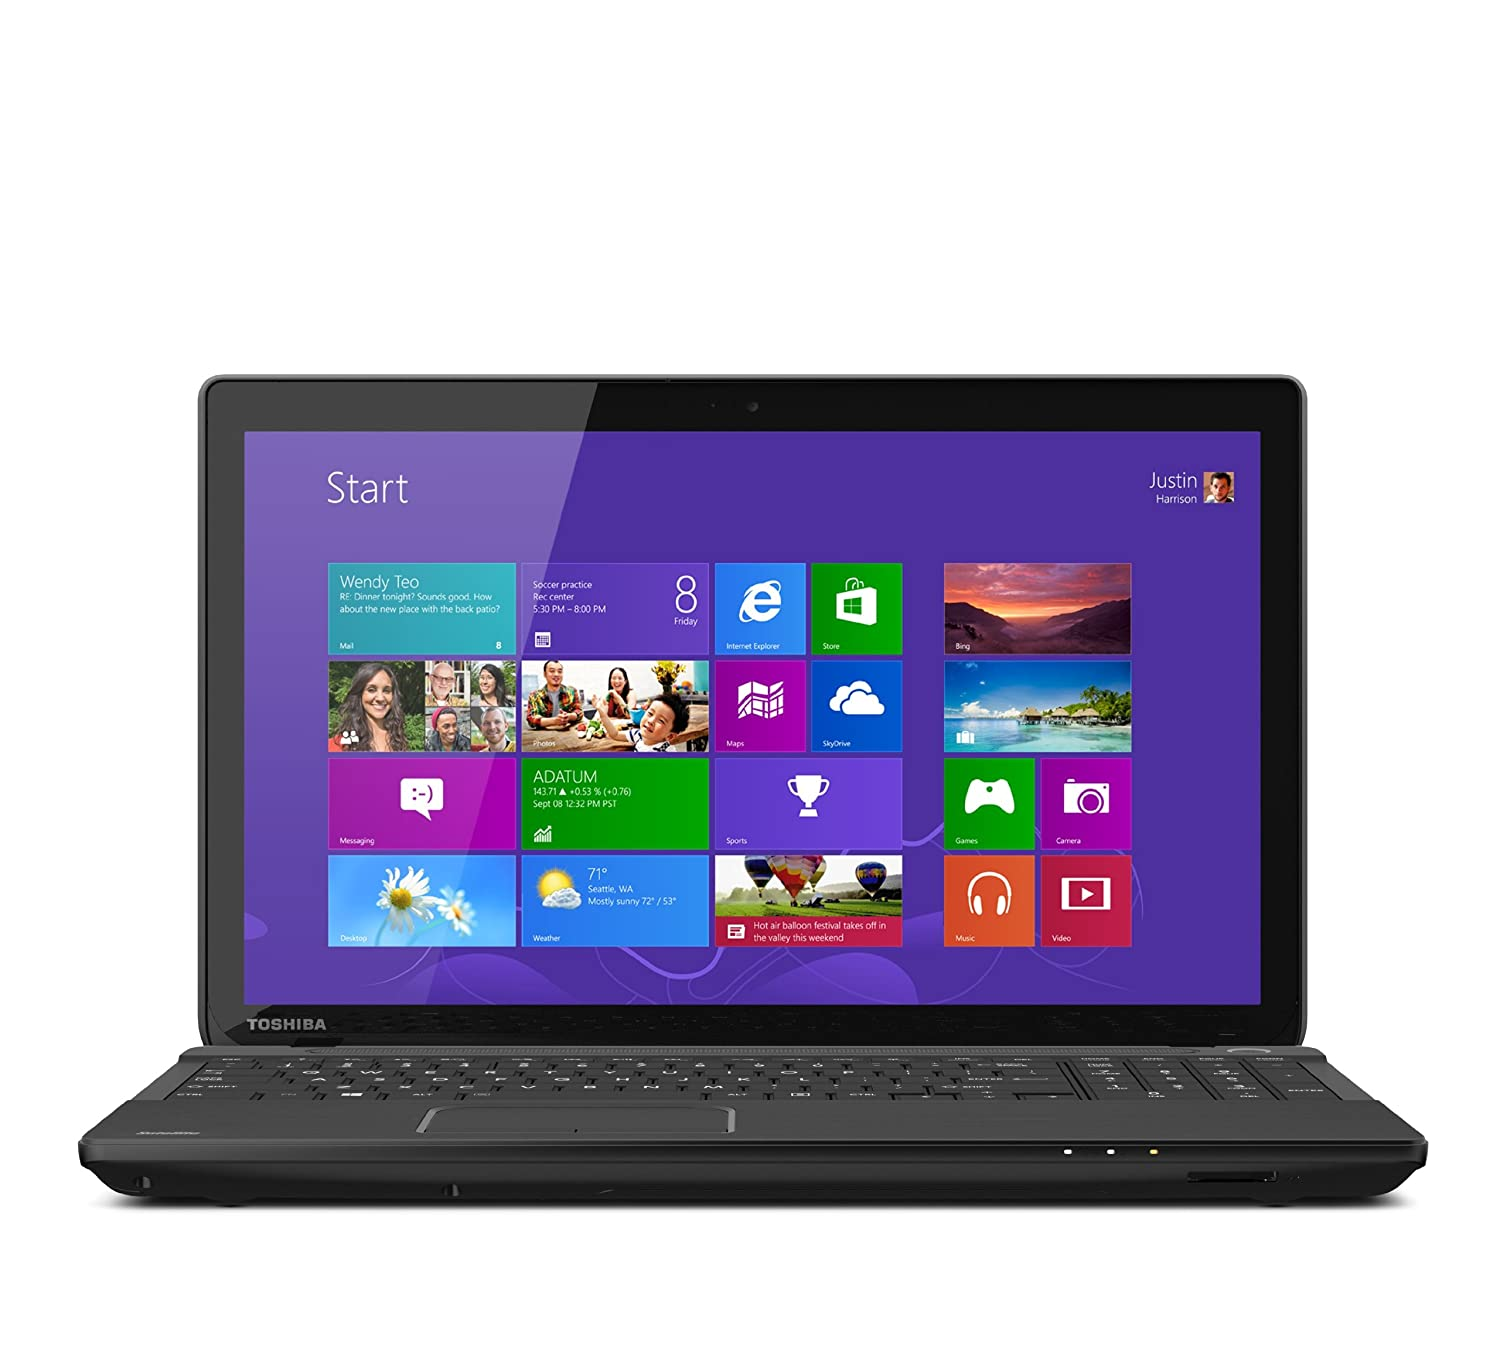 Toshiba Satellite C55Dt-A5148 15.6-Inch Touchscreen Laptop